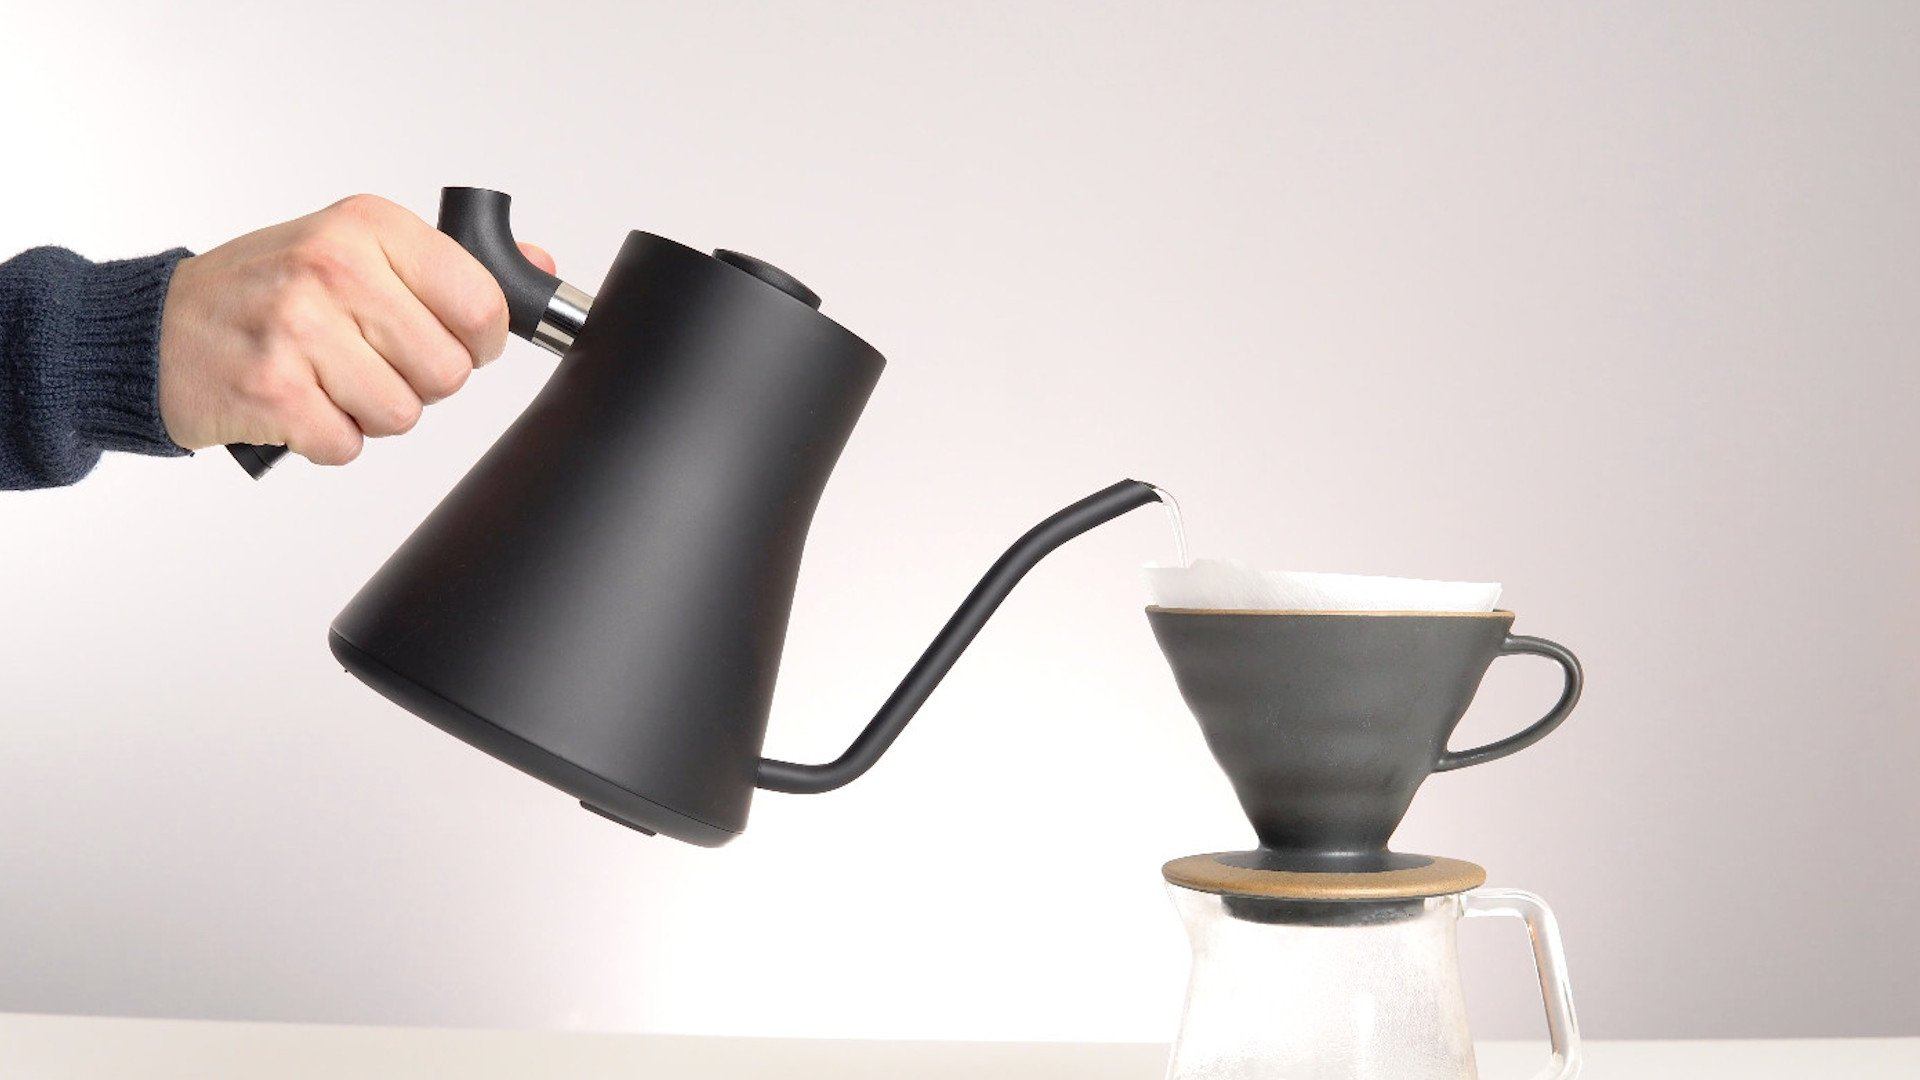 Stagg EKG Kettle Review